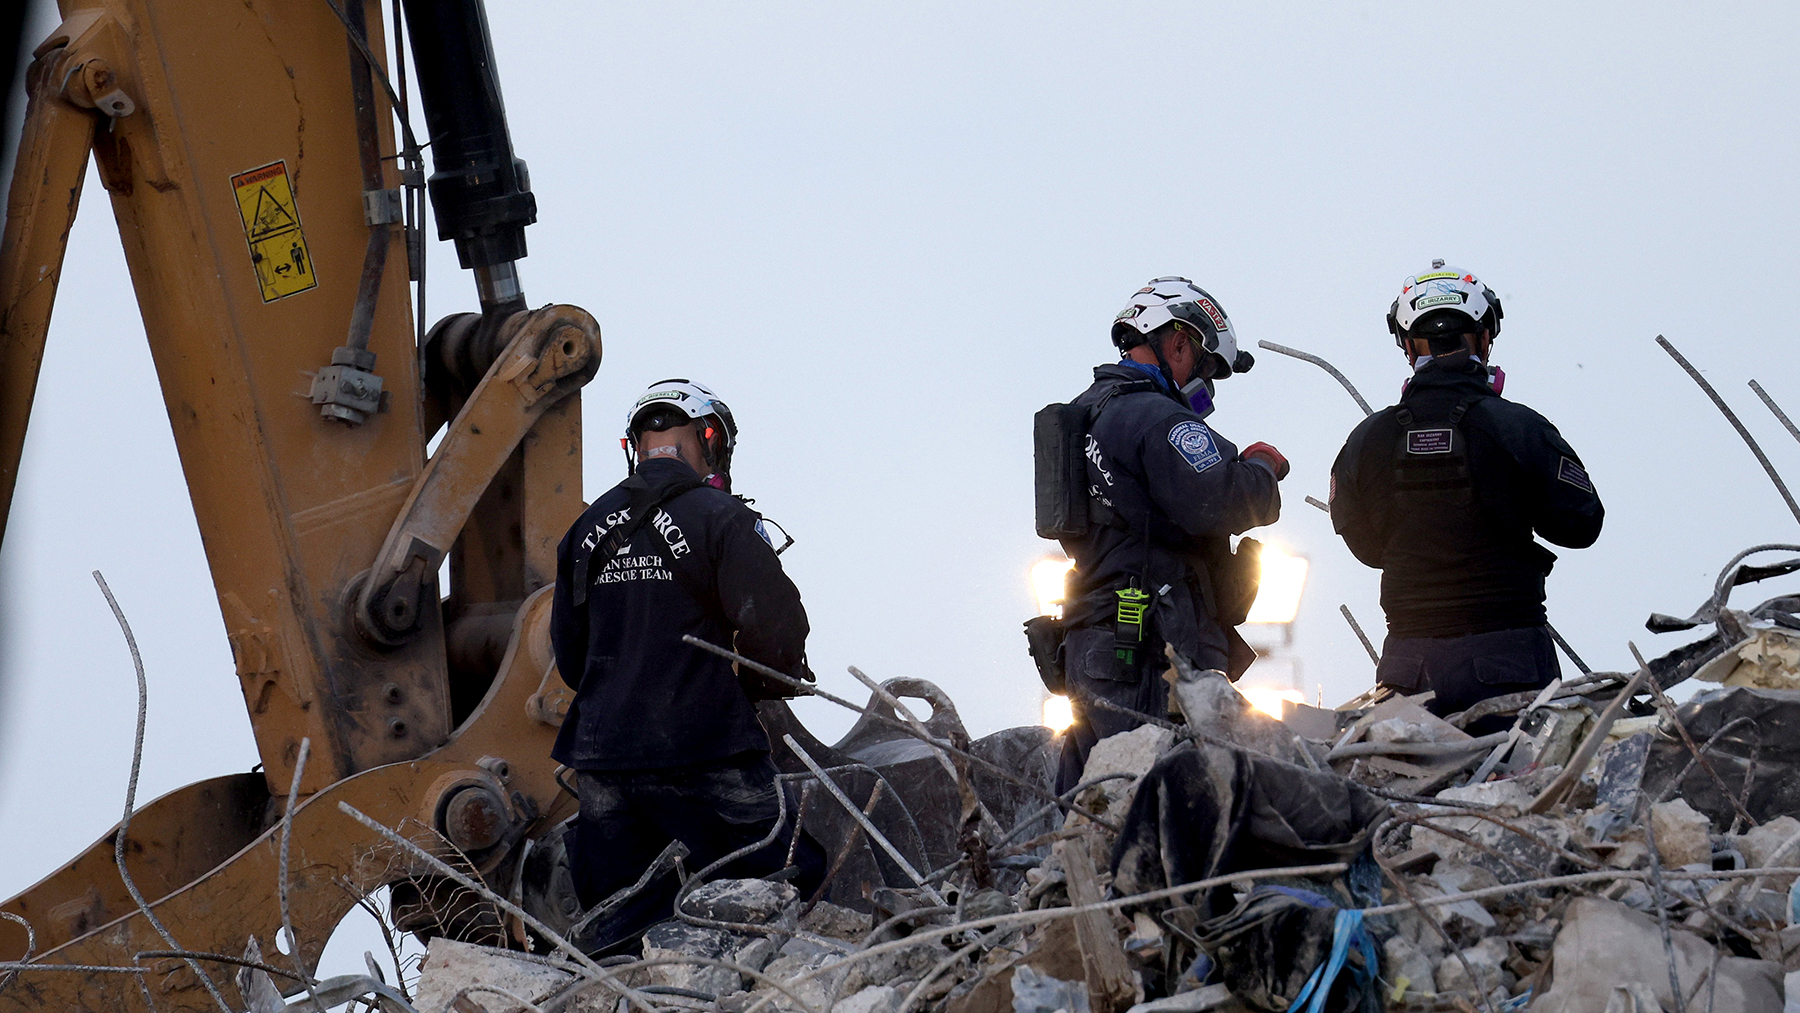 Search and rescue workers oversee an excavator dig through the rubble of the collapsed 12-story Champlain Towers South condo building on July 09, 2021 in Surfside, Florida. (Photo by Anna Moneymaker/Getty Images)